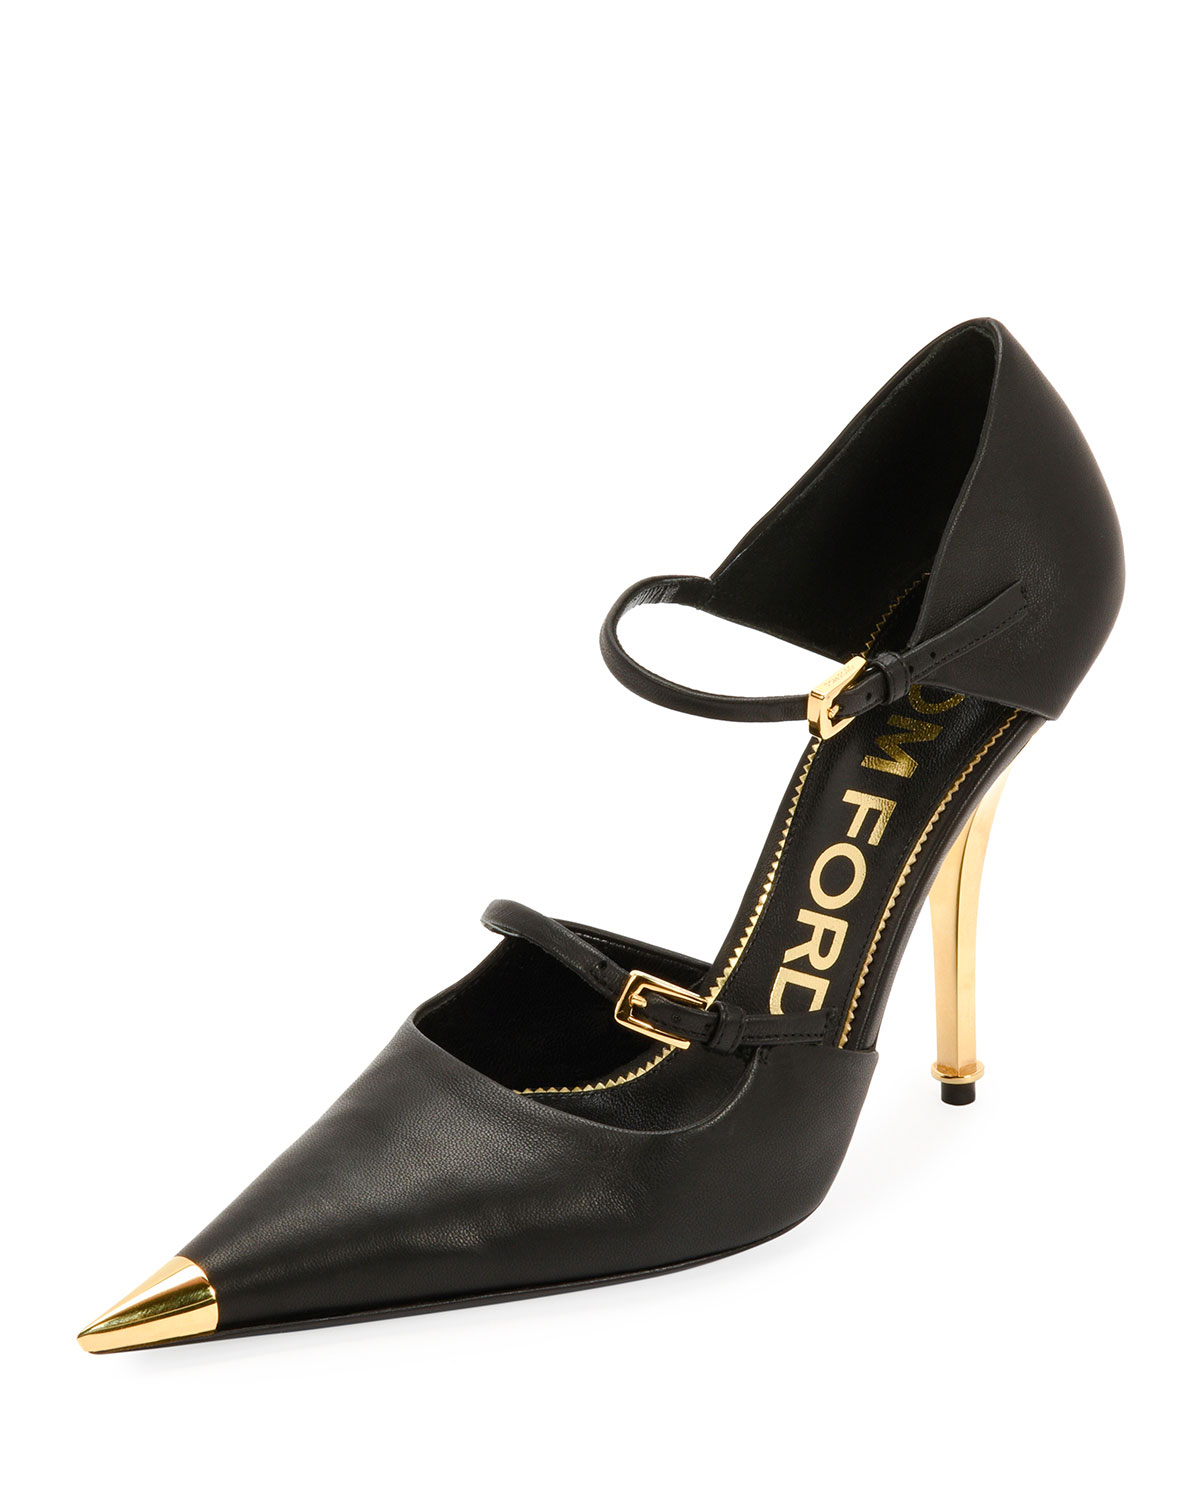 classcic Discover new appearance Two-Strap Mary Jane Pumps with Pointed Metal Toe